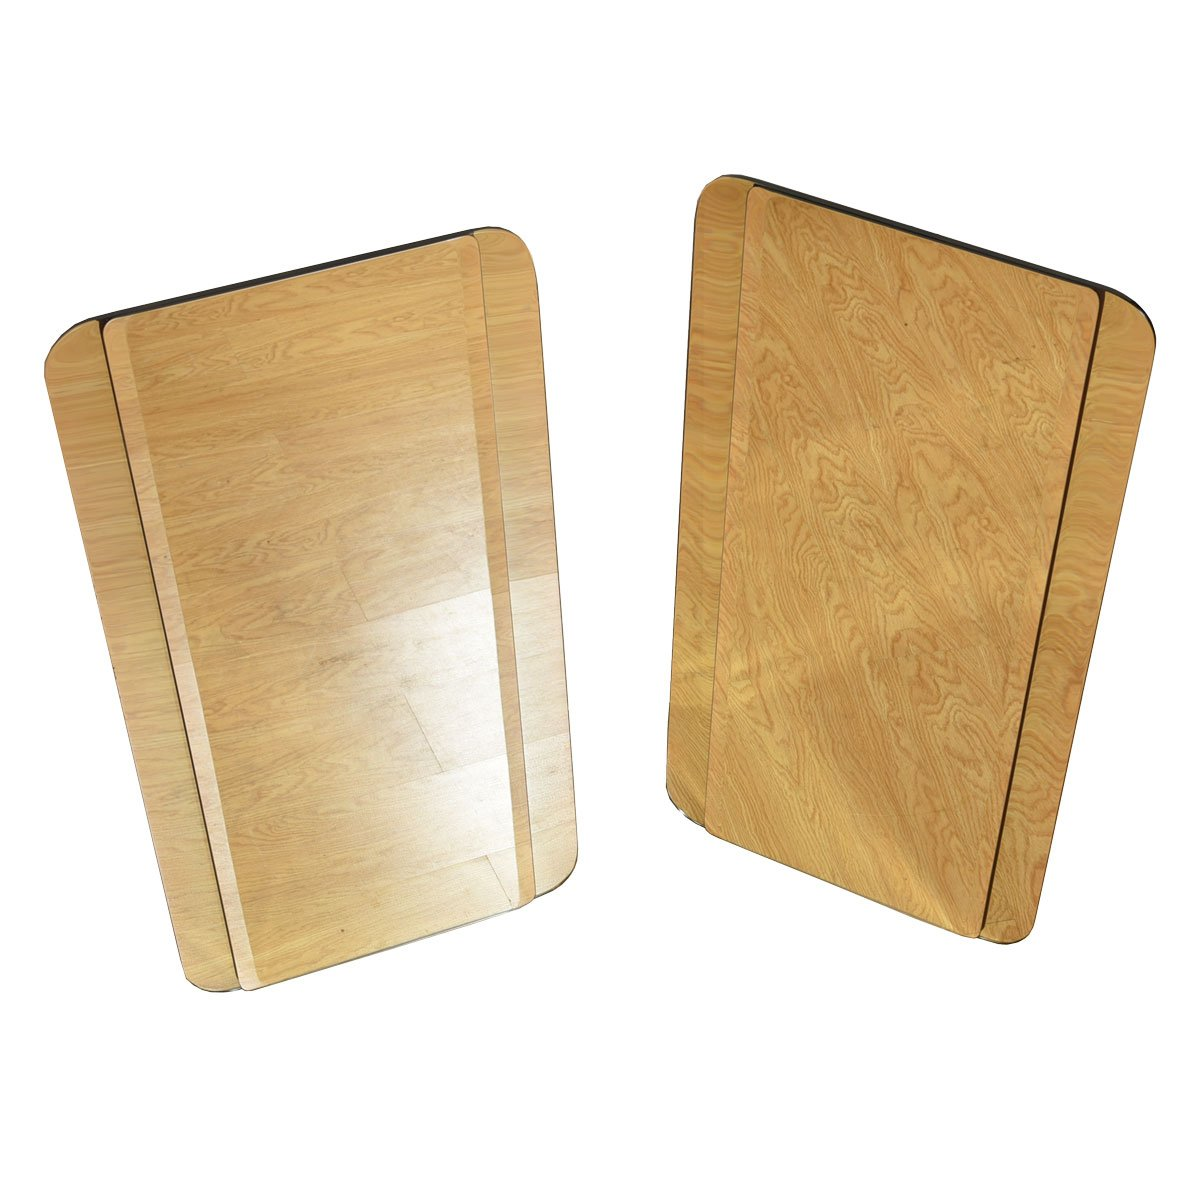 Pair of Large Mirrors with Rounded Corners